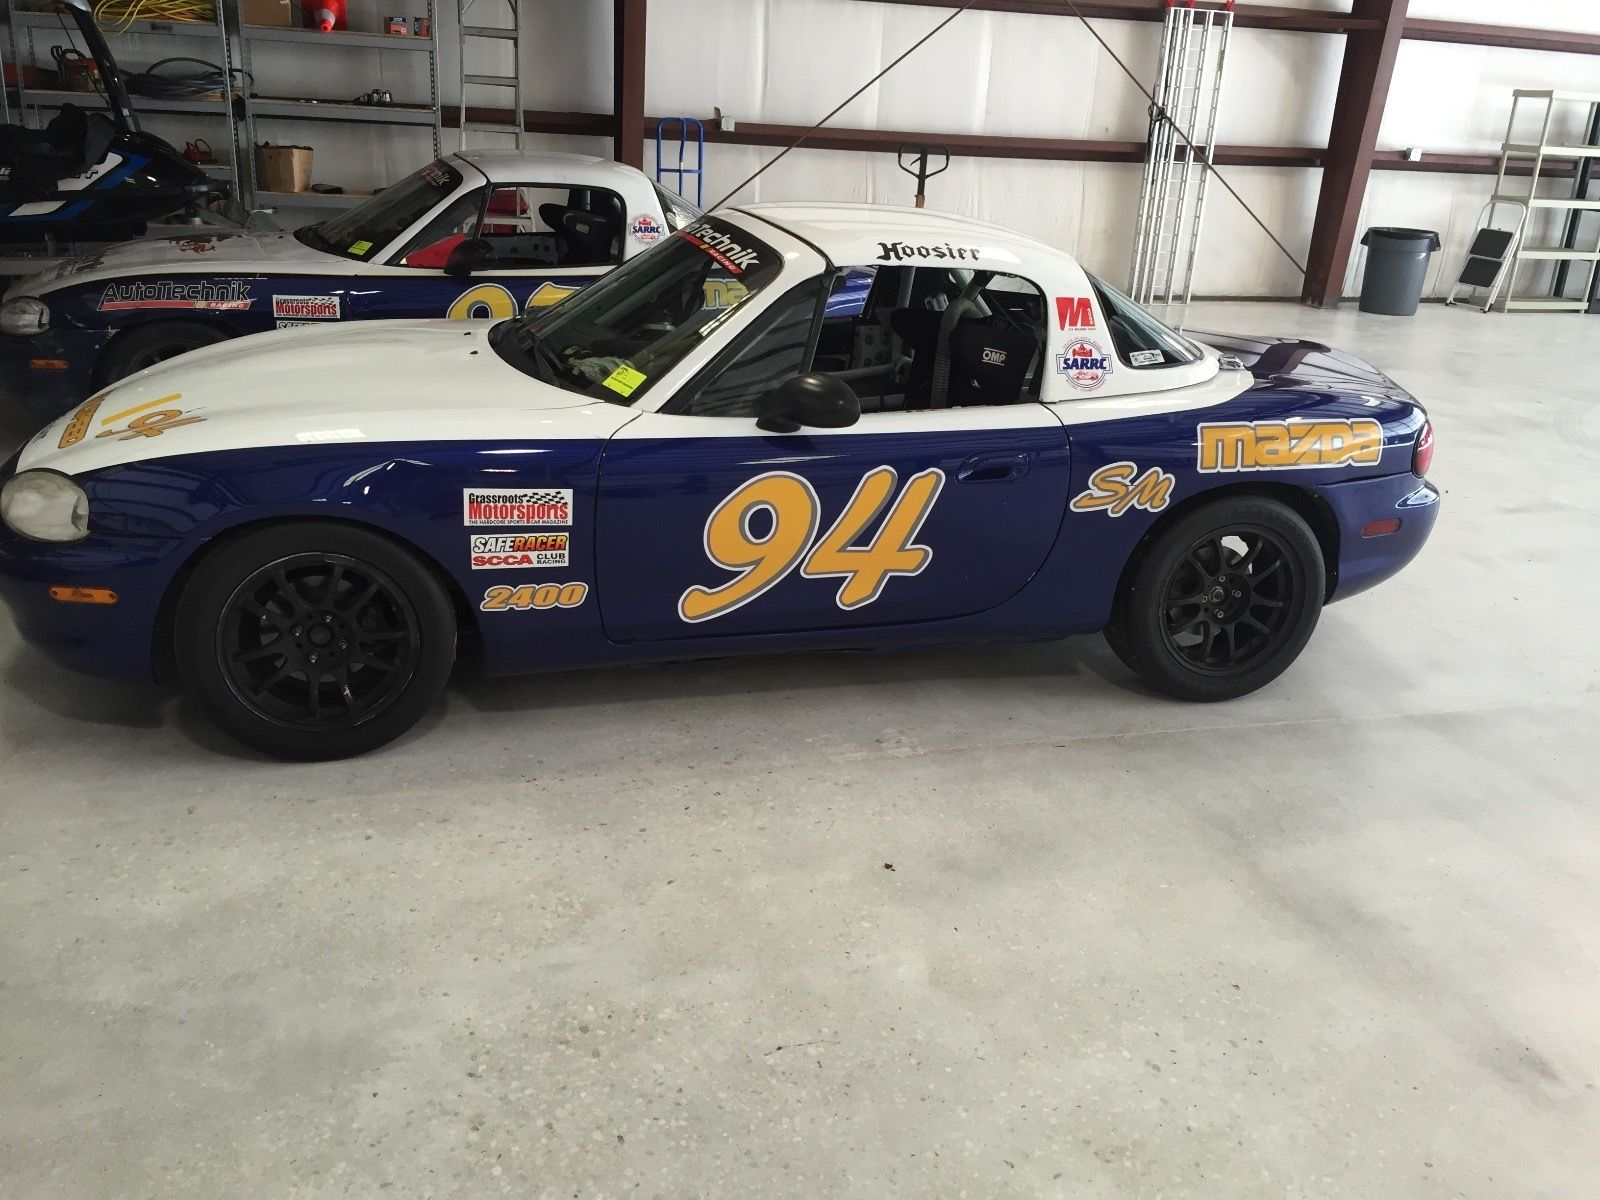 Spec Miata For Sale >> 1999 Mazda Miata Spec Race Car for sale